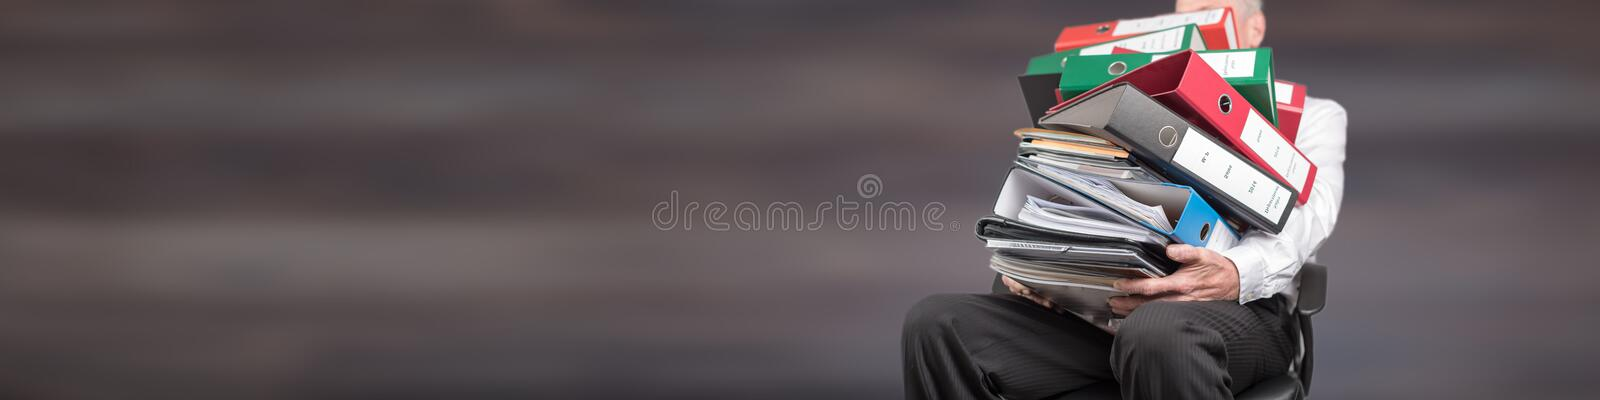 Businessman overworked carrying a pile of binders and folders. On grey background royalty free stock photography